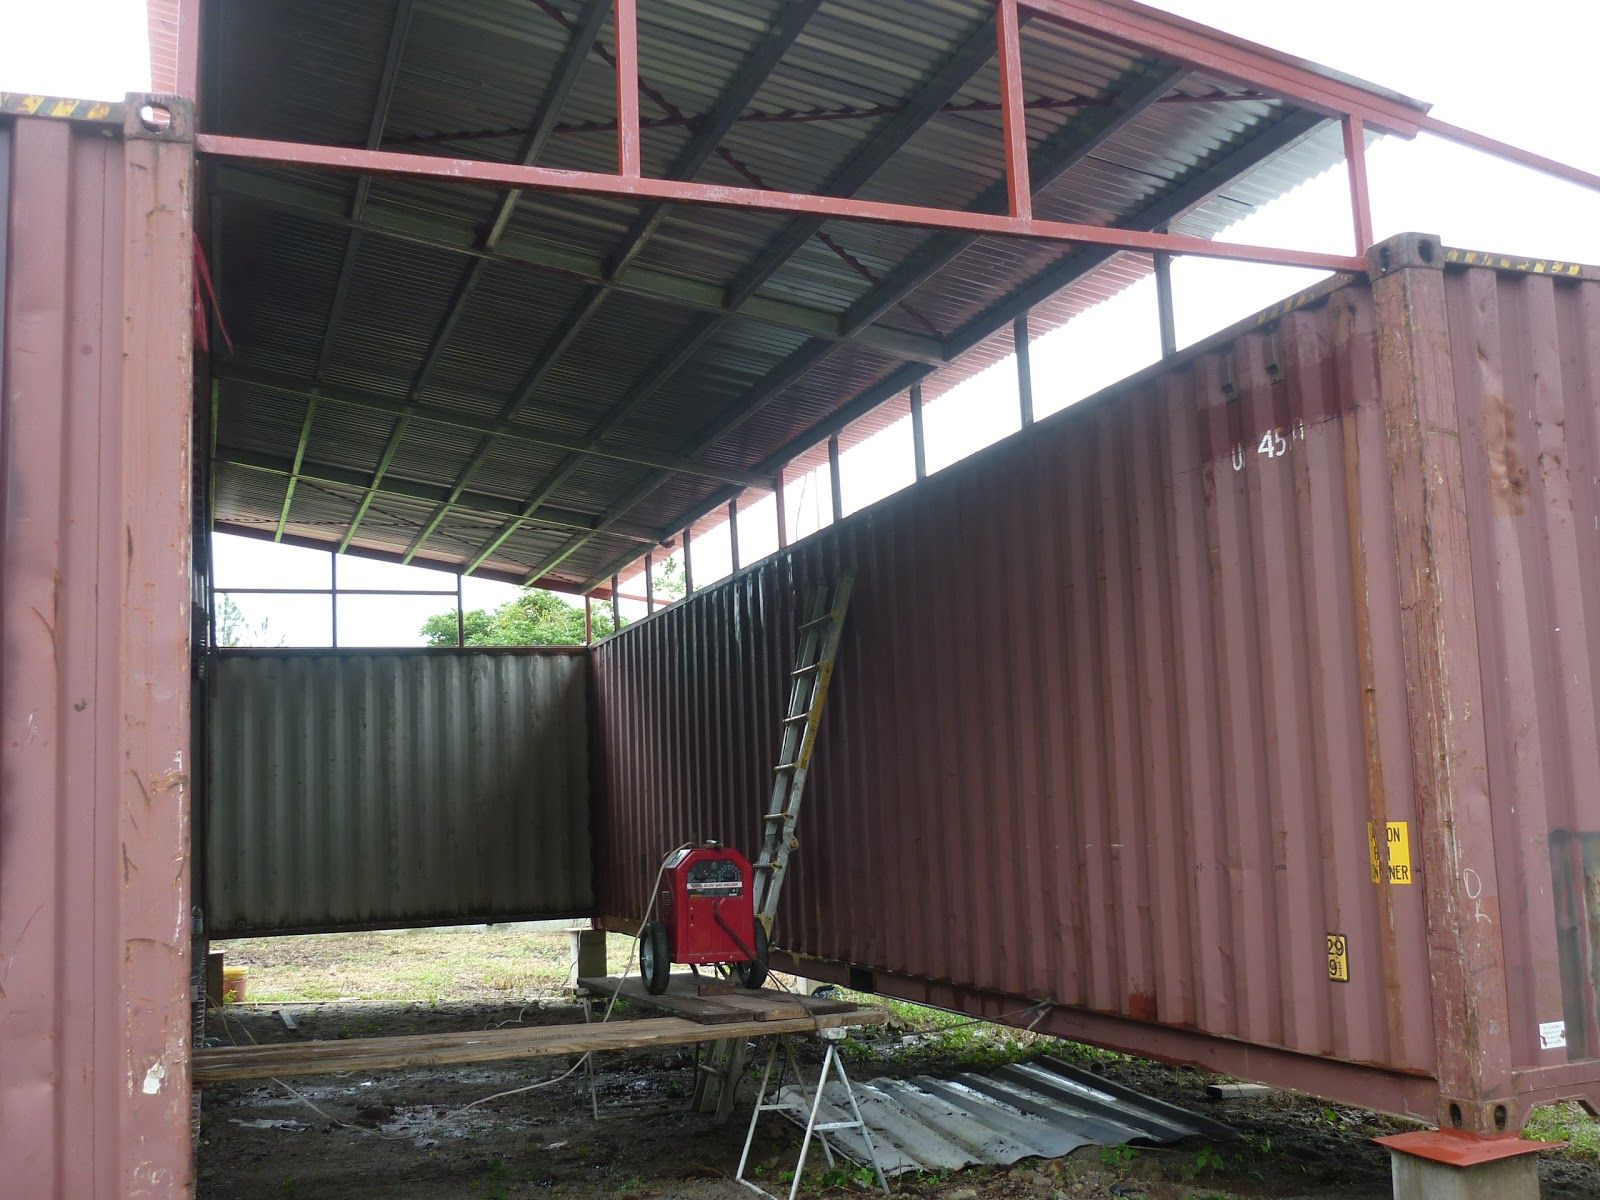 shipping container homes, small home living, isbus, corten steel